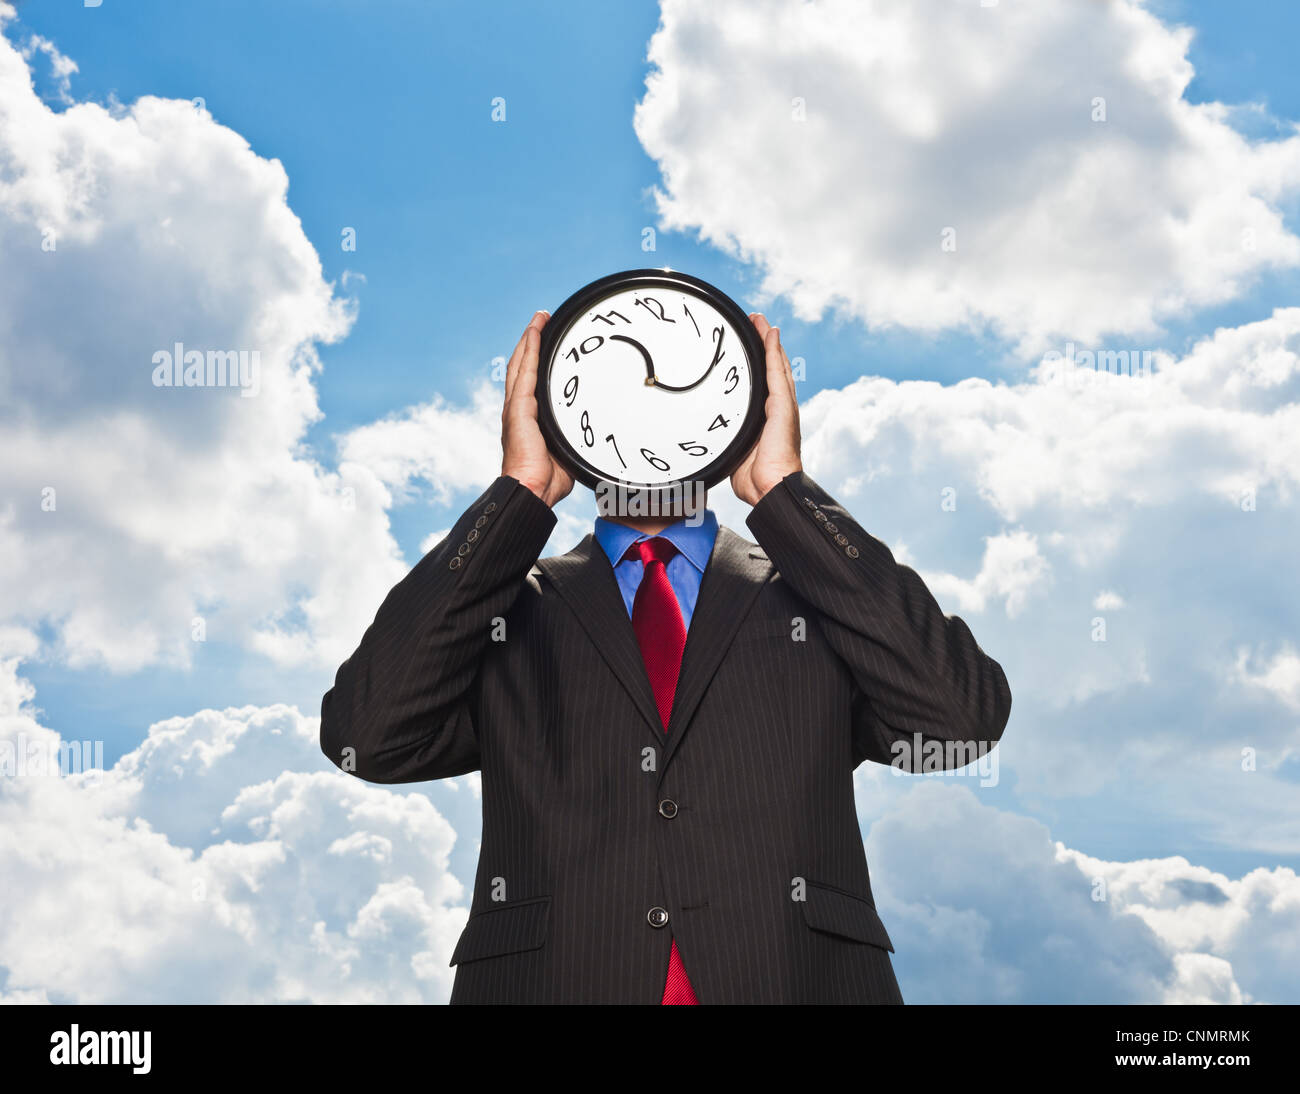 Businessman holding warped clock - Stock Image